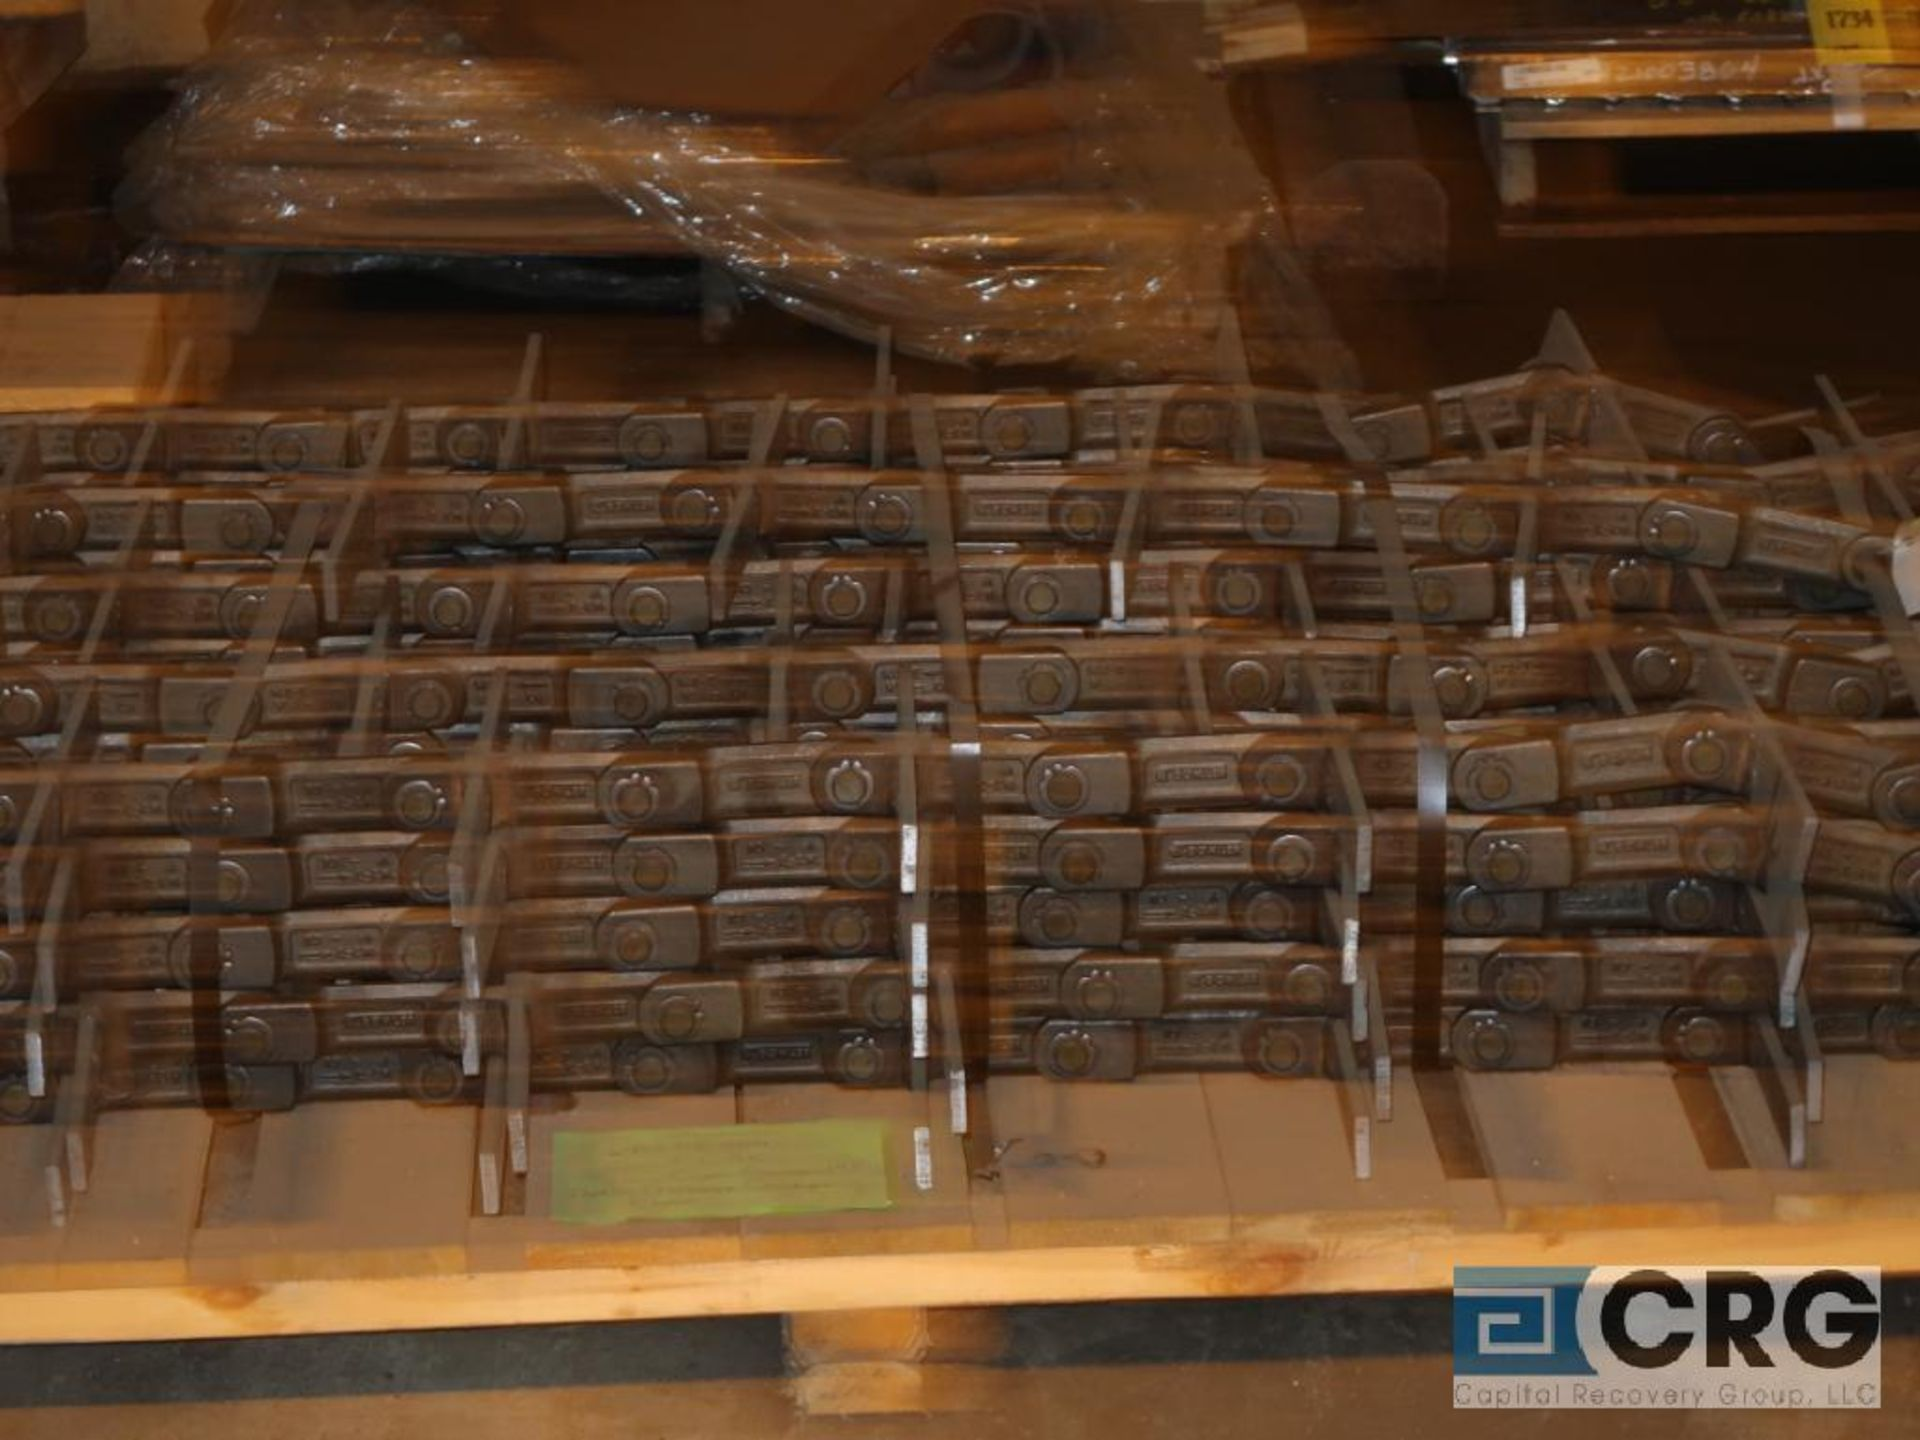 Lot of assorted parts for debarker, coal, and chipper on (29) pallets (Next Bay Cage Area) - Image 16 of 17